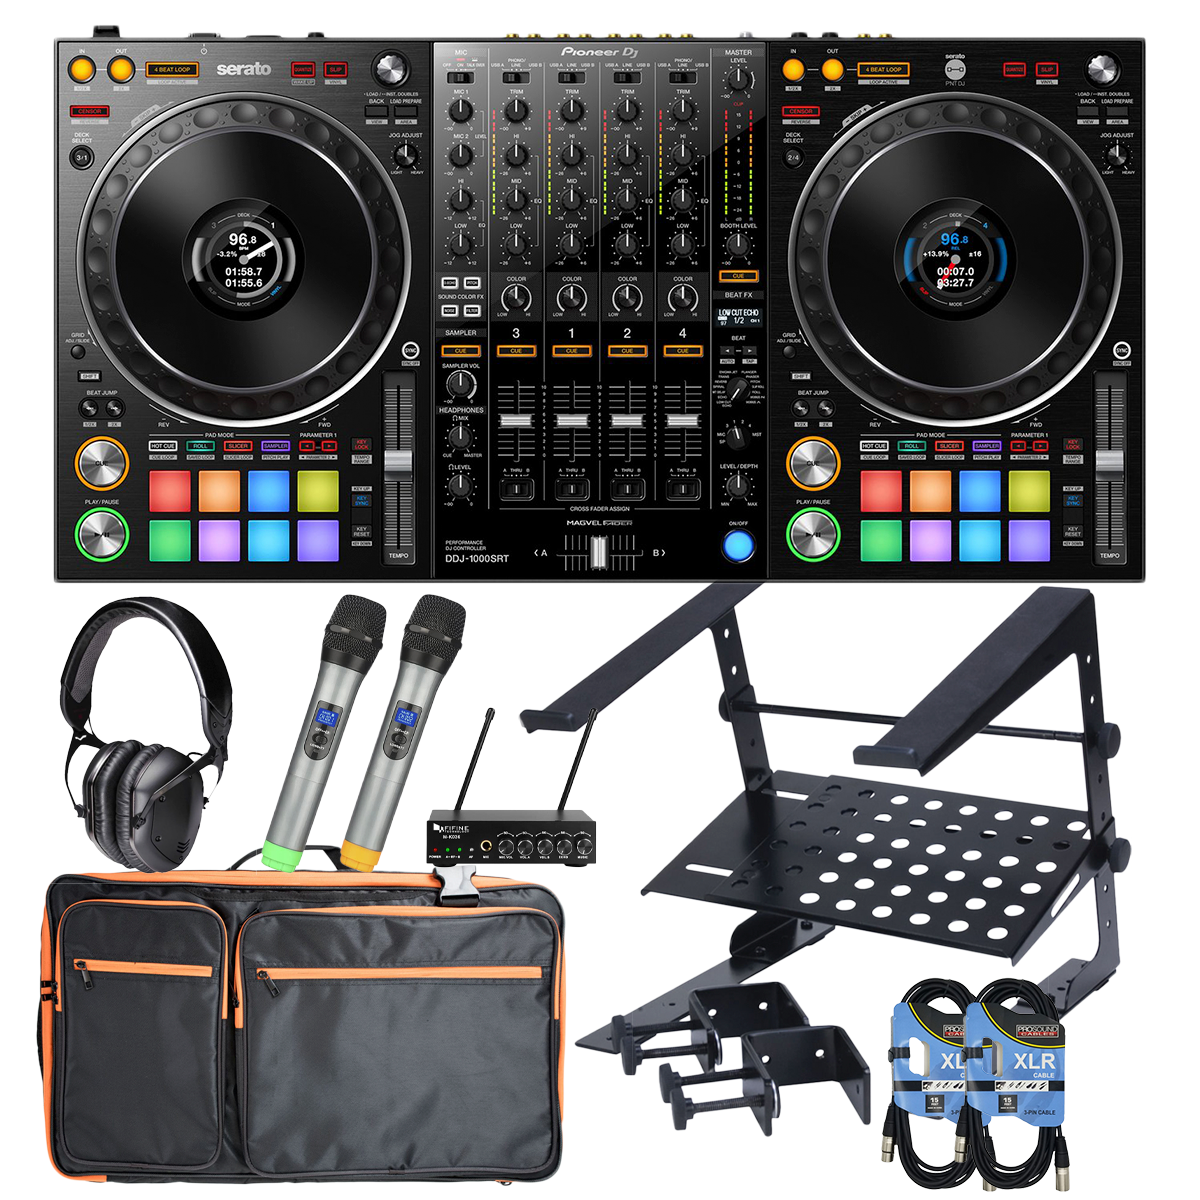 -1Pioneer DJ DDJ-1000SRT DJ Controller - Accenta Backpack - V-Moda LP2 - Laptop Stand - Fifine UHF Dual Channel Wireless - (2) XLR Cables - $1428.90